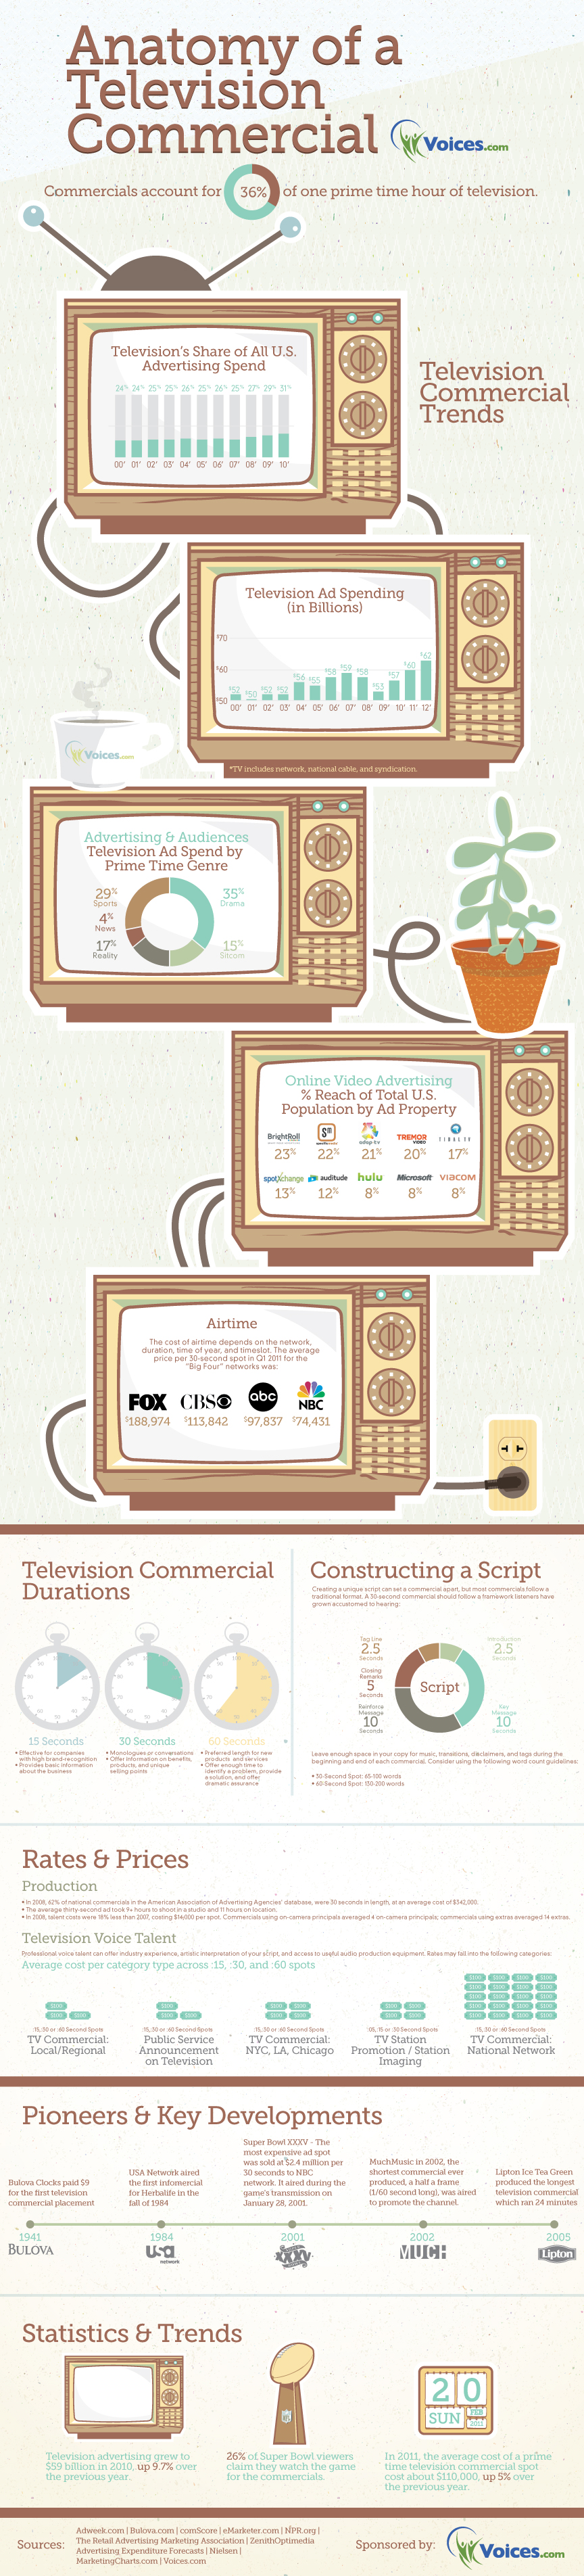 Anatomy of a Television Commercial